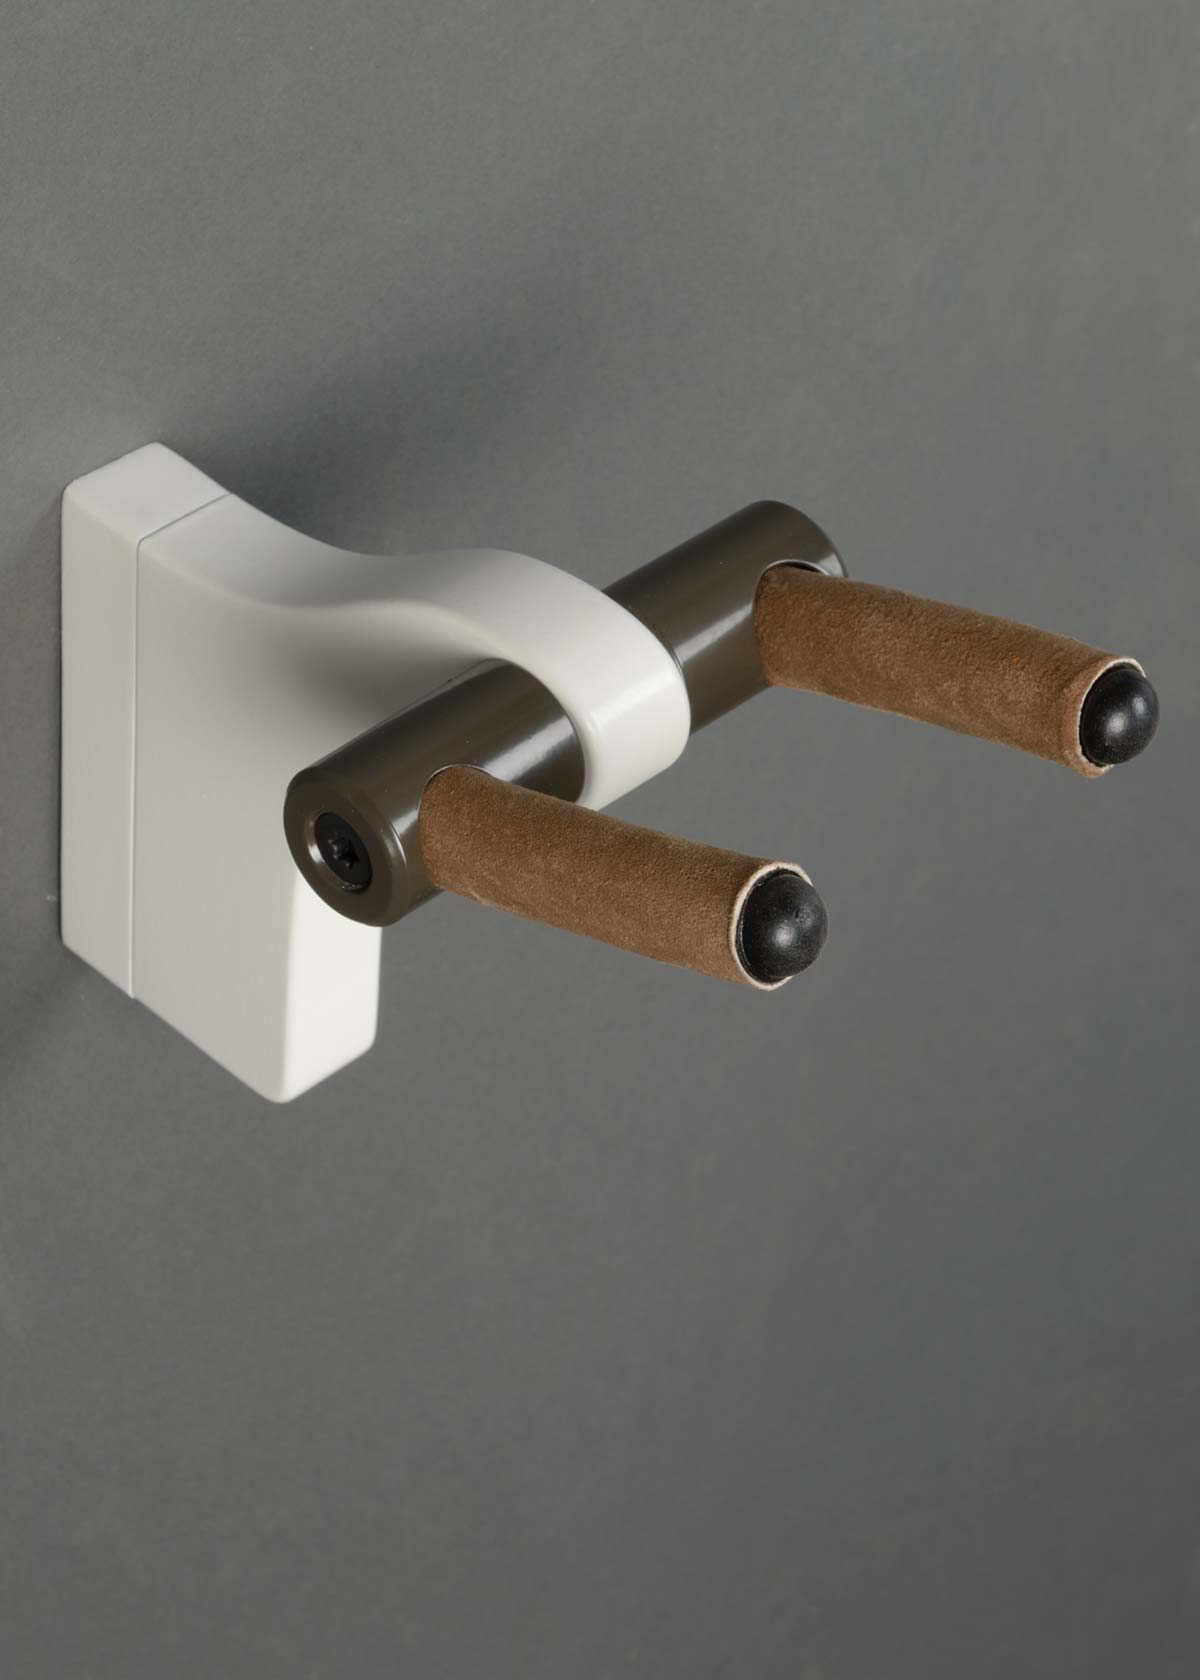 AM Wall Hanger - White Lacquer, Architectural Bronze Hardware